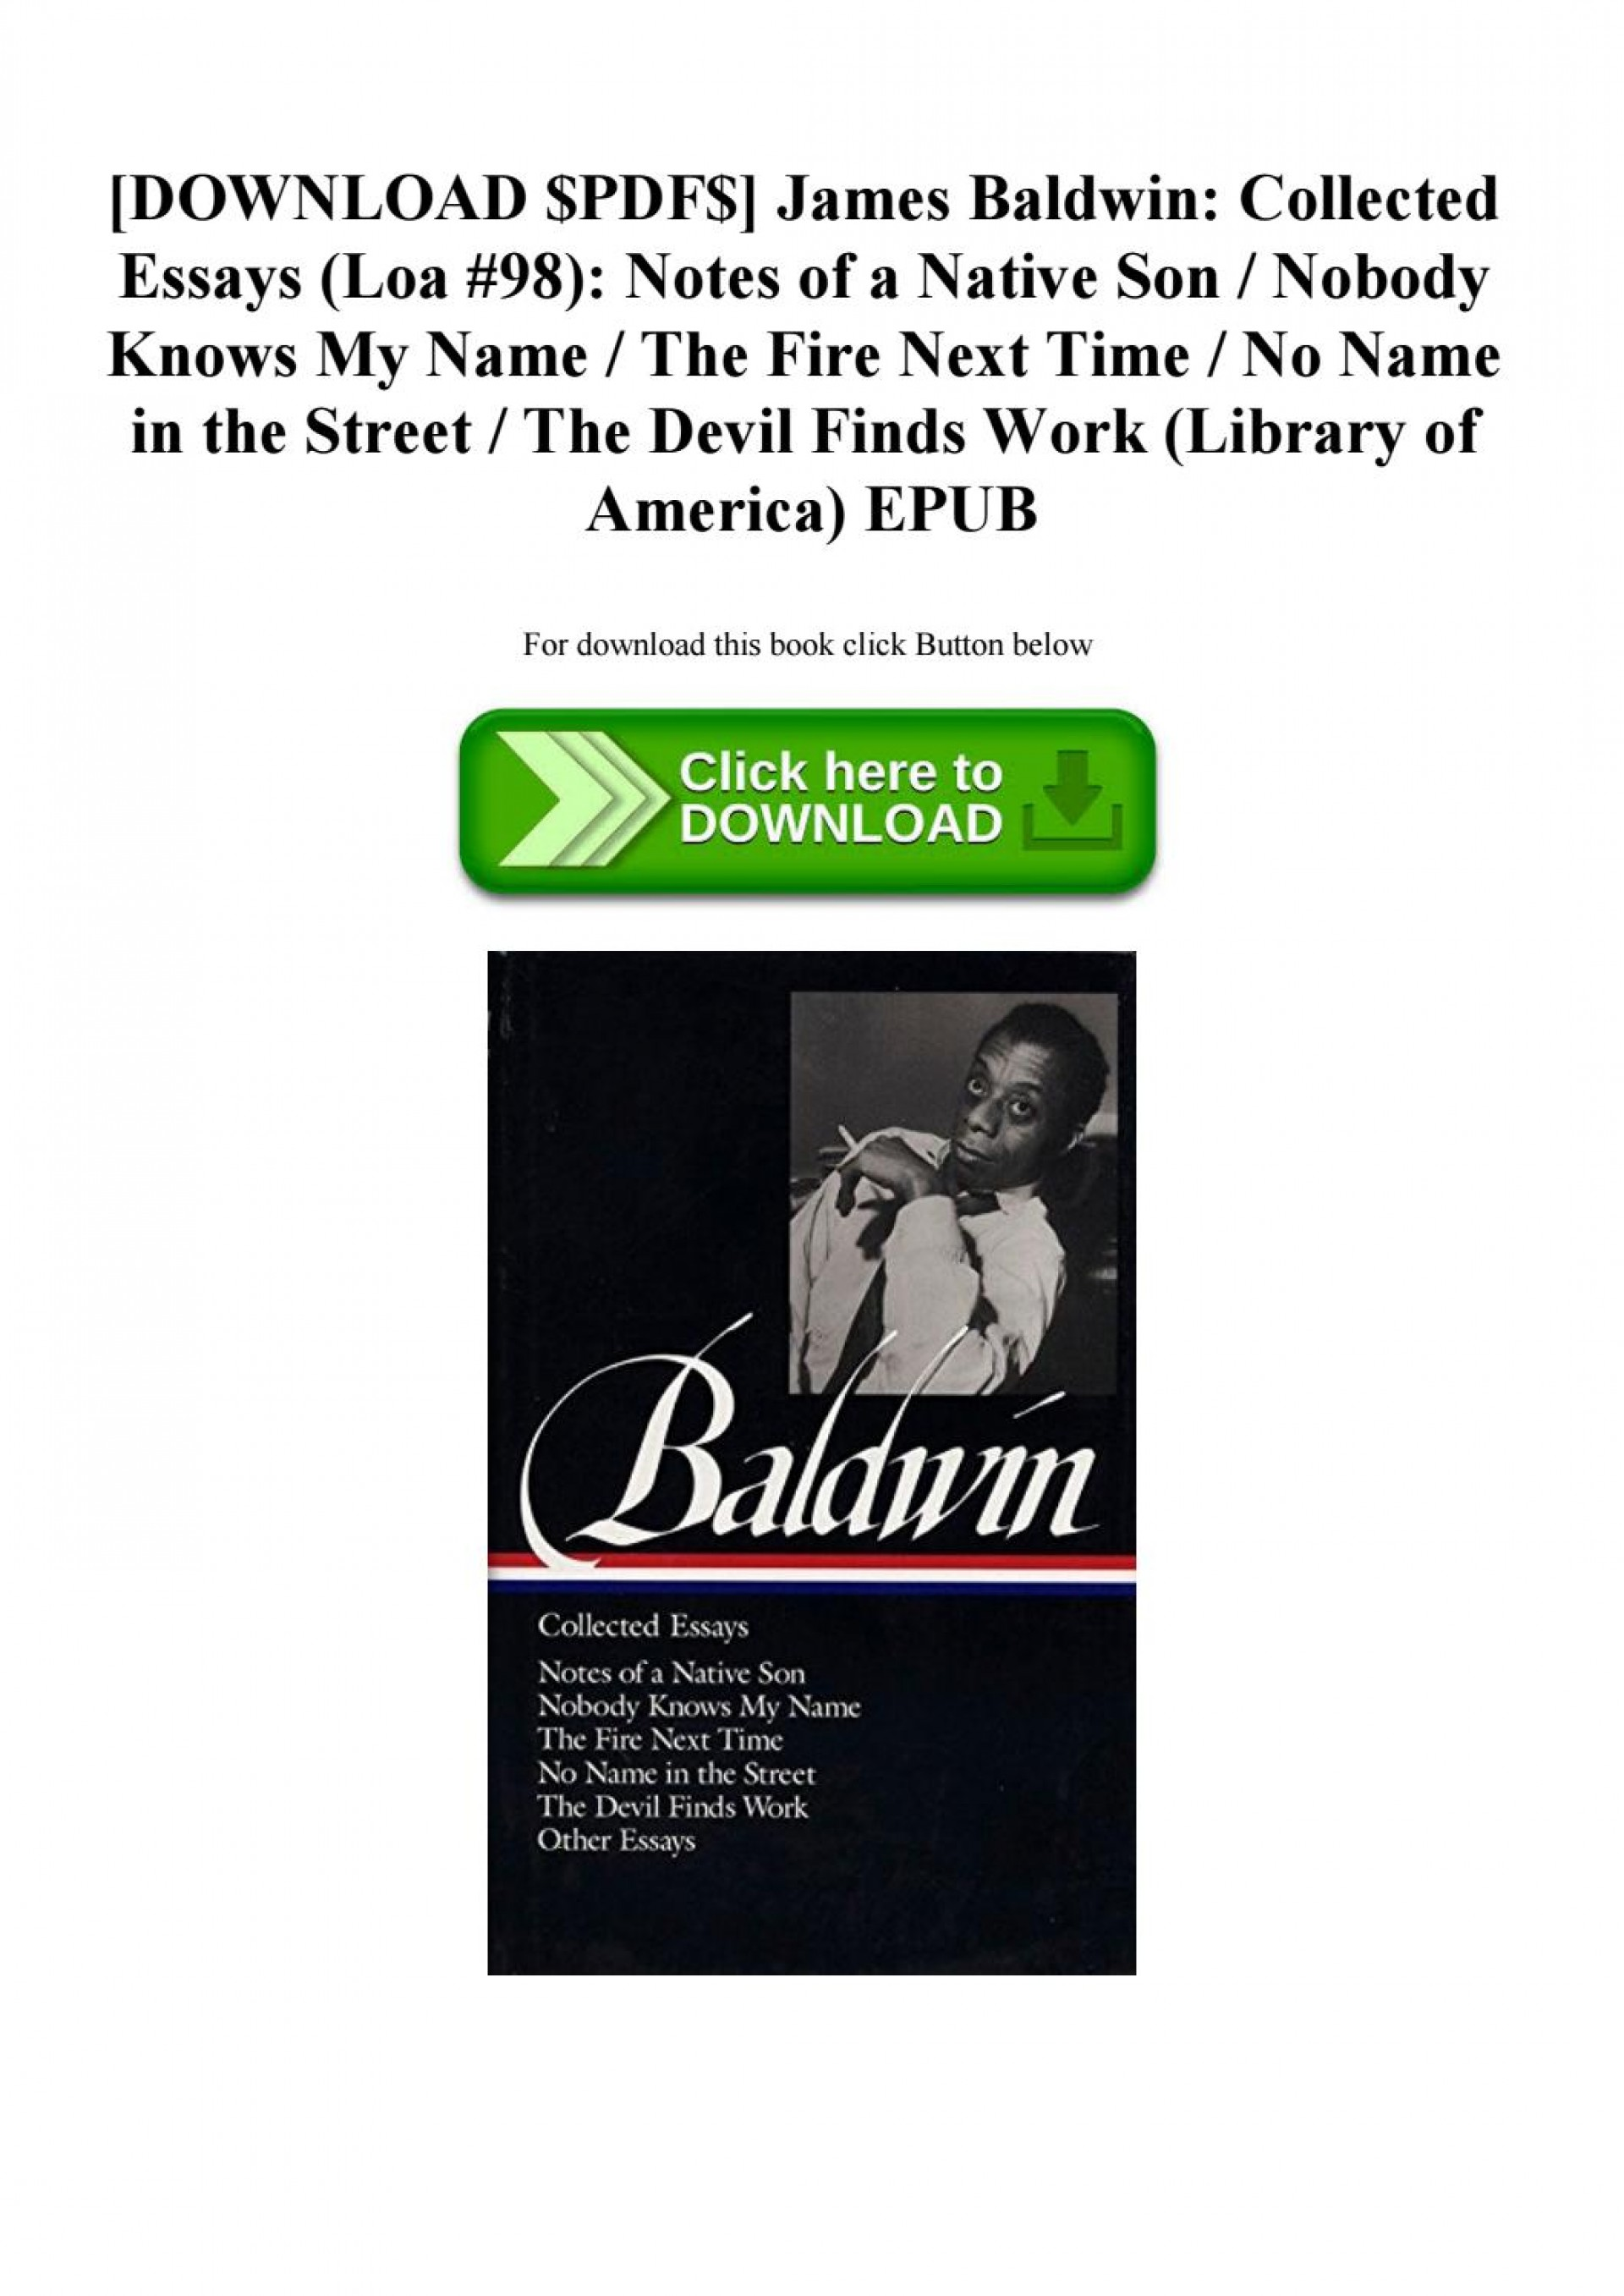 006 Page 1 James Baldwin Collected Essays Essay Wondrous Google Books Pdf Table Of Contents 1920